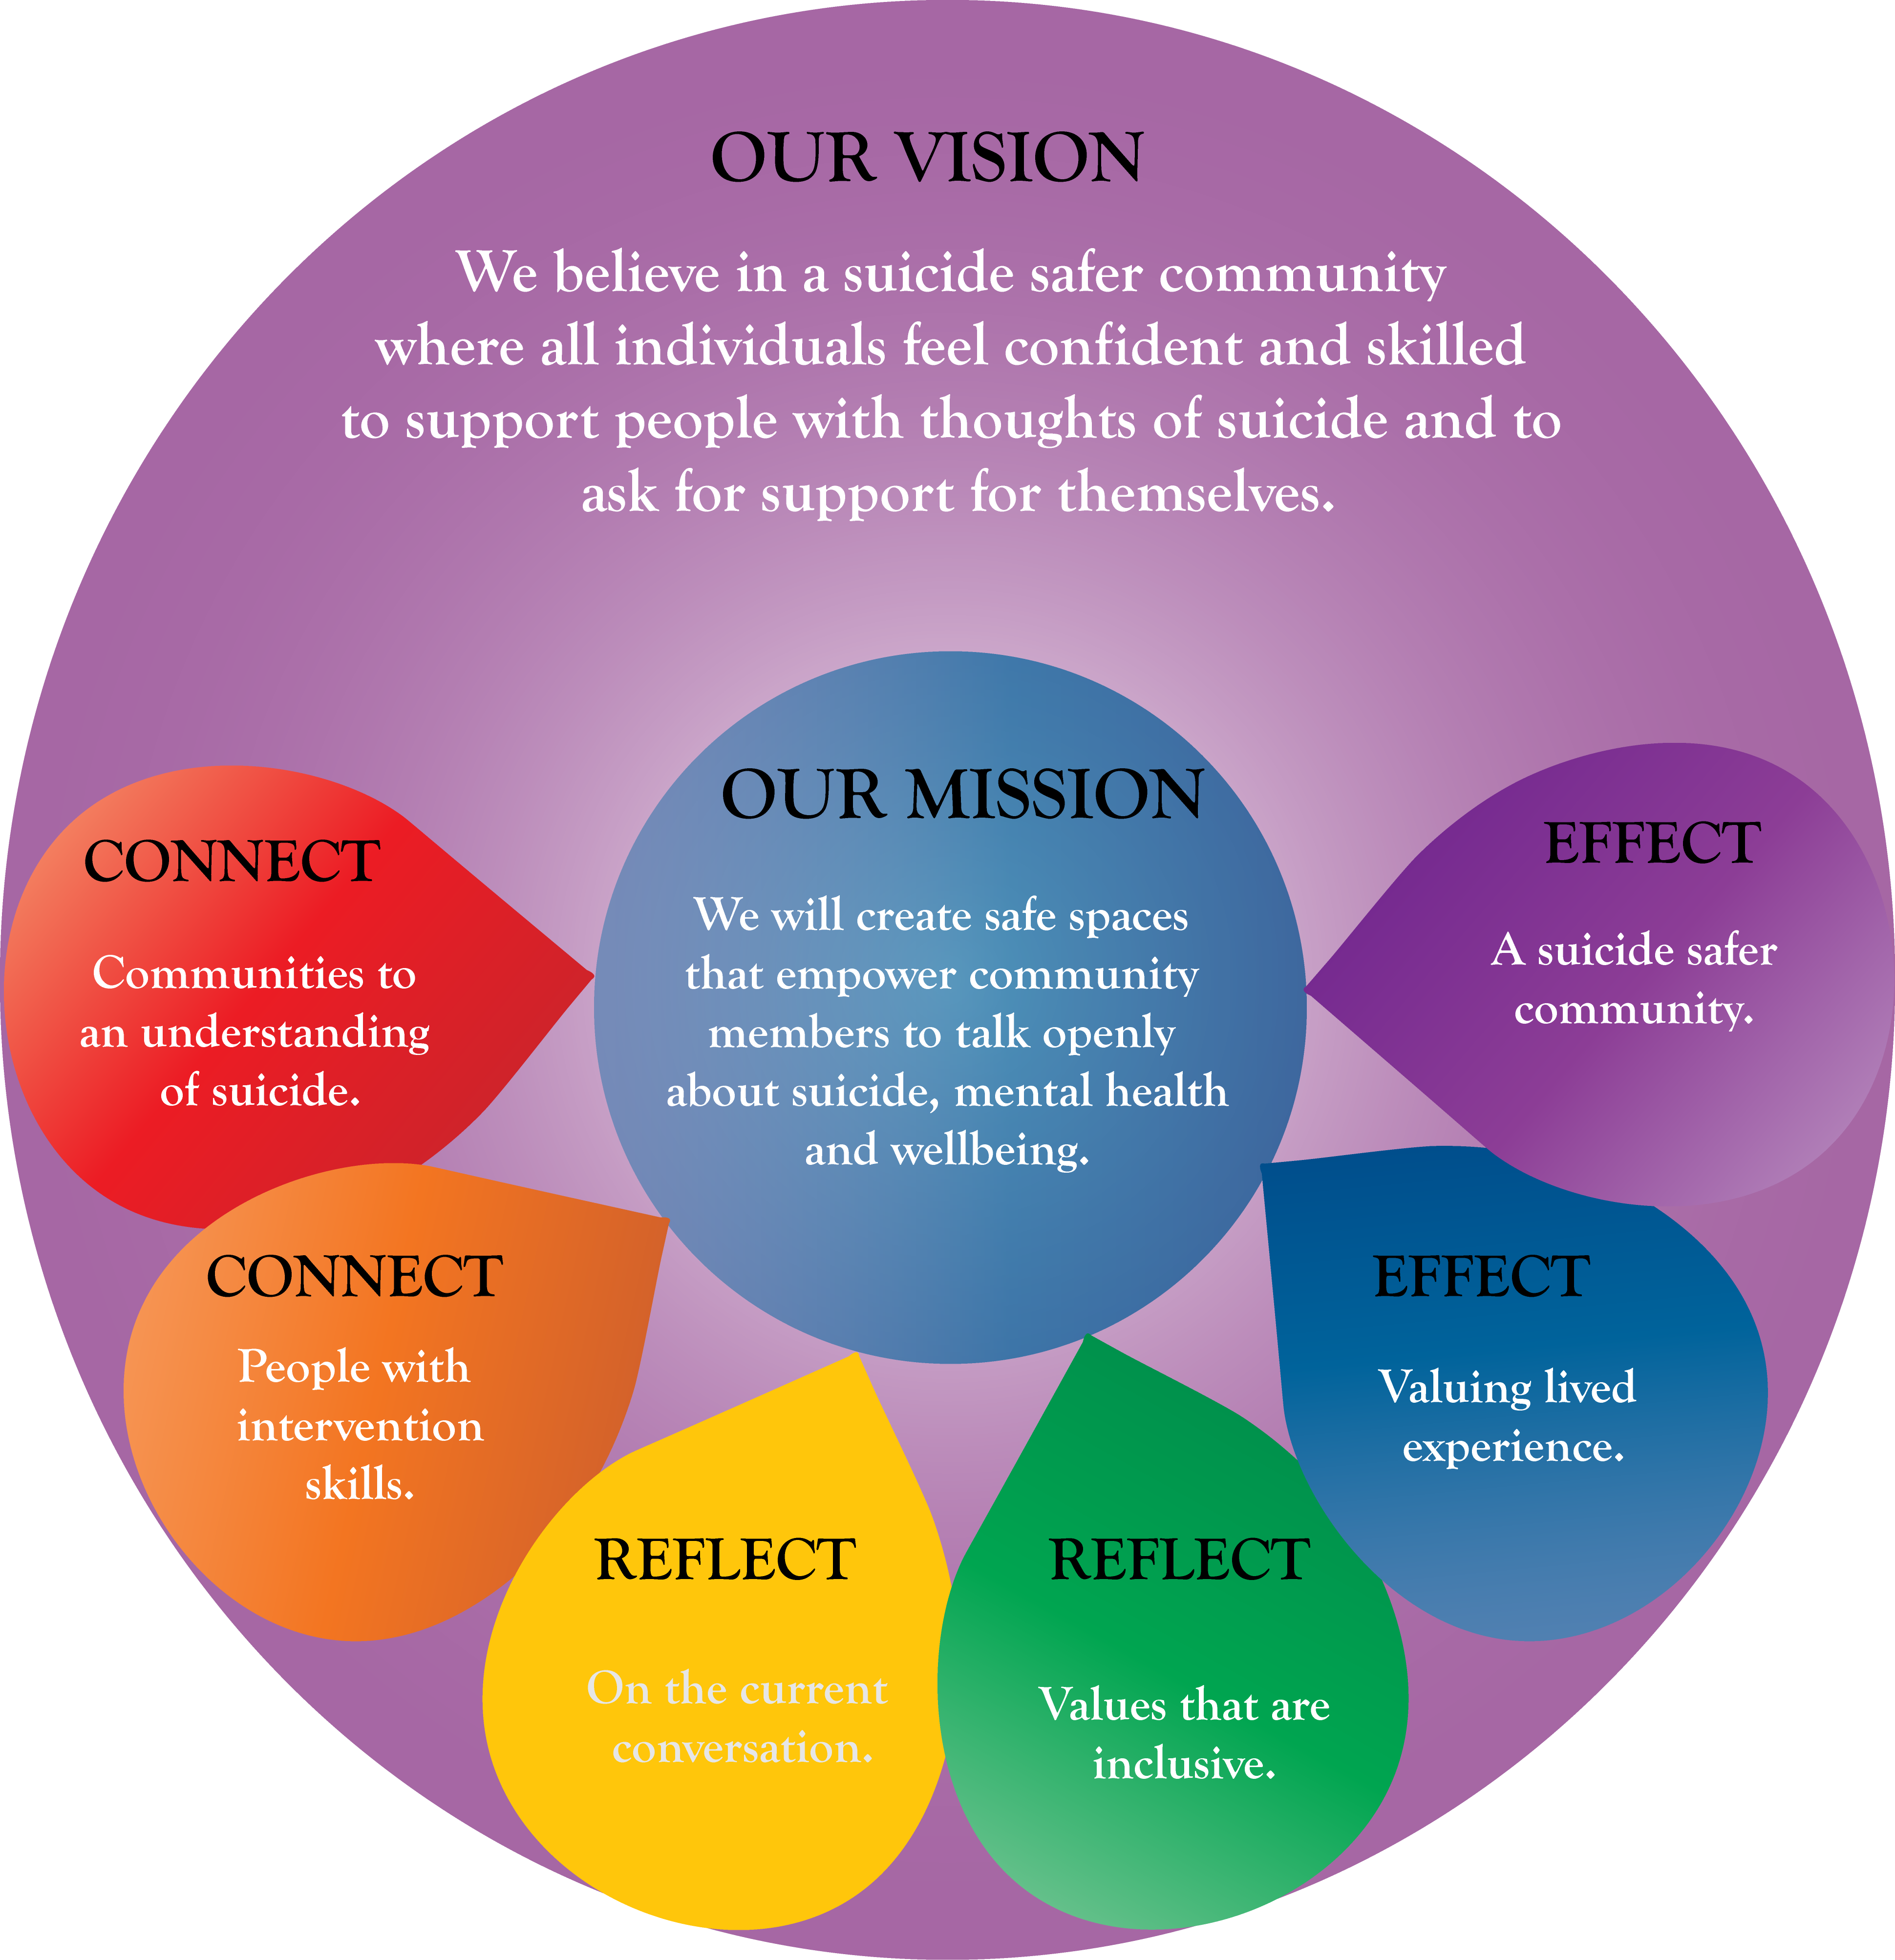 Vision and Mission150